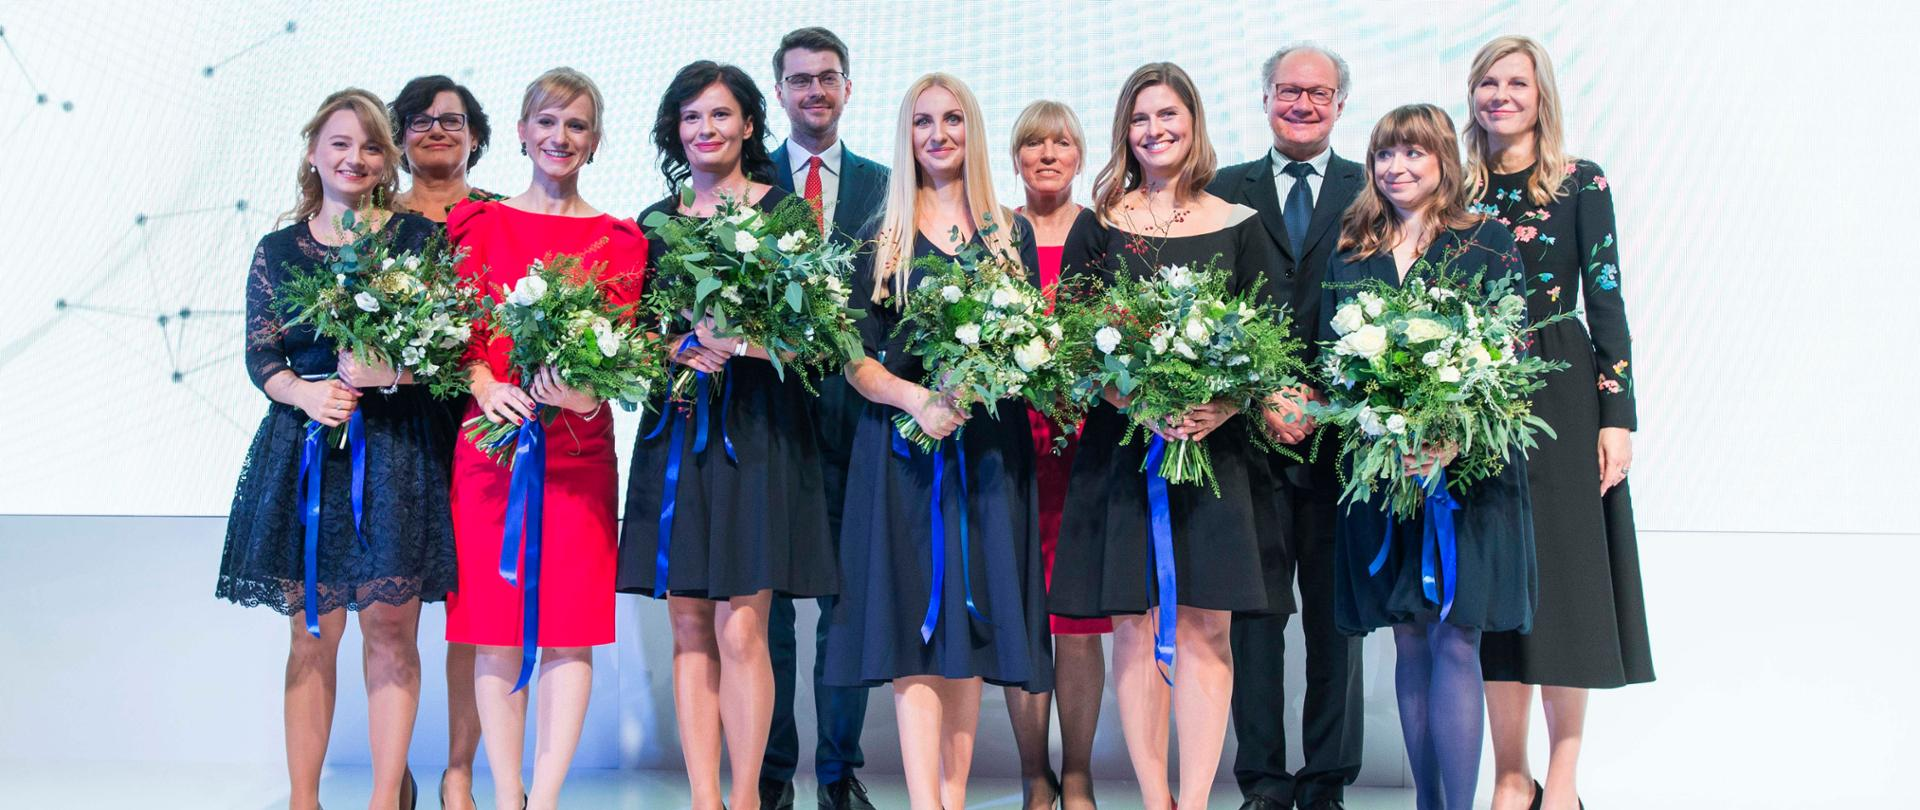 Minister Piotr Muller and laureates of L'Oréal-UNESCO fellowships for Women in Science